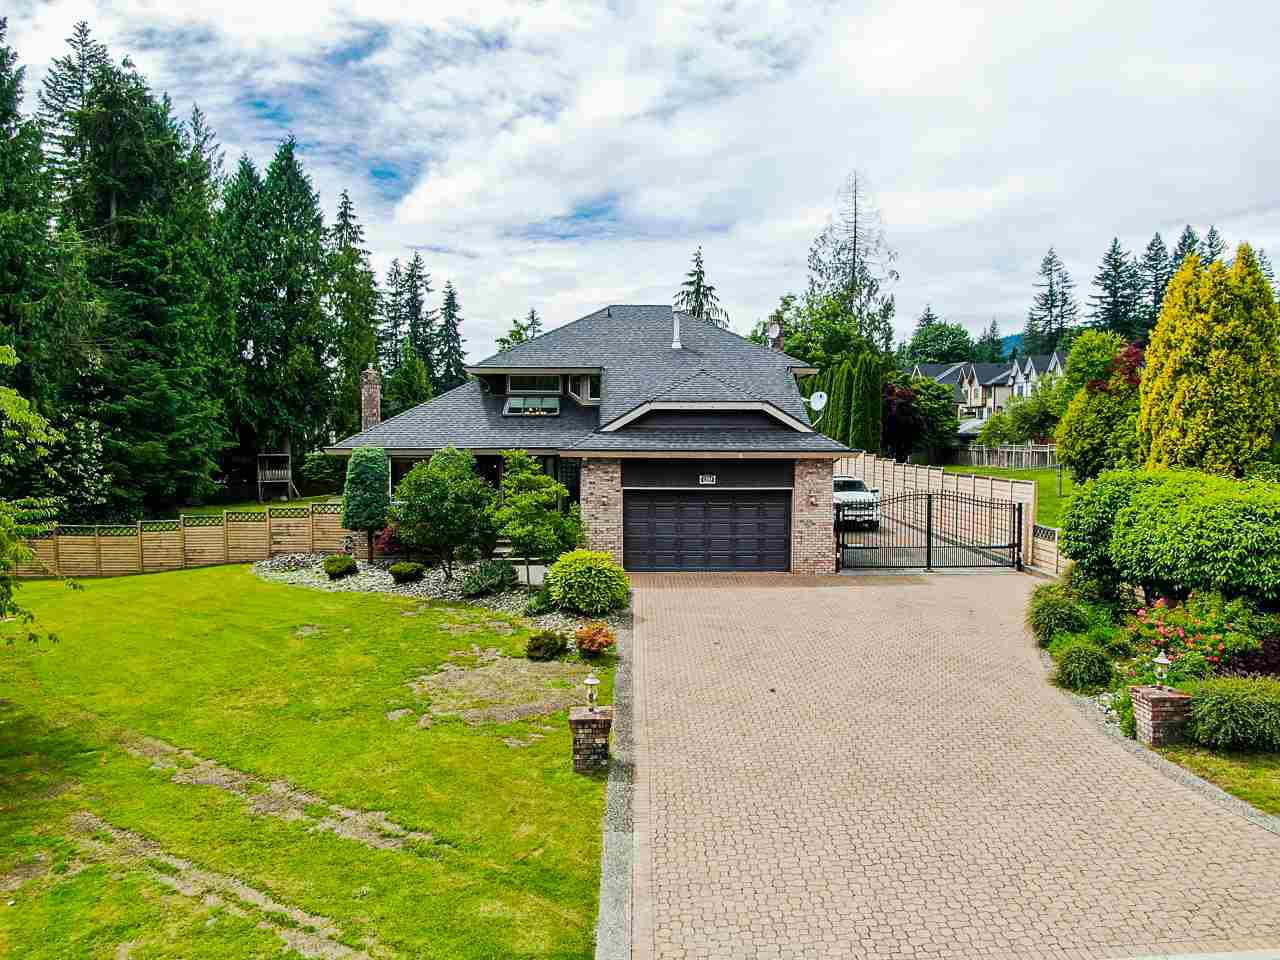 Main Photo: 1384 GLENBROOK Street in Coquitlam: Burke Mountain House for sale : MLS®# R2465479